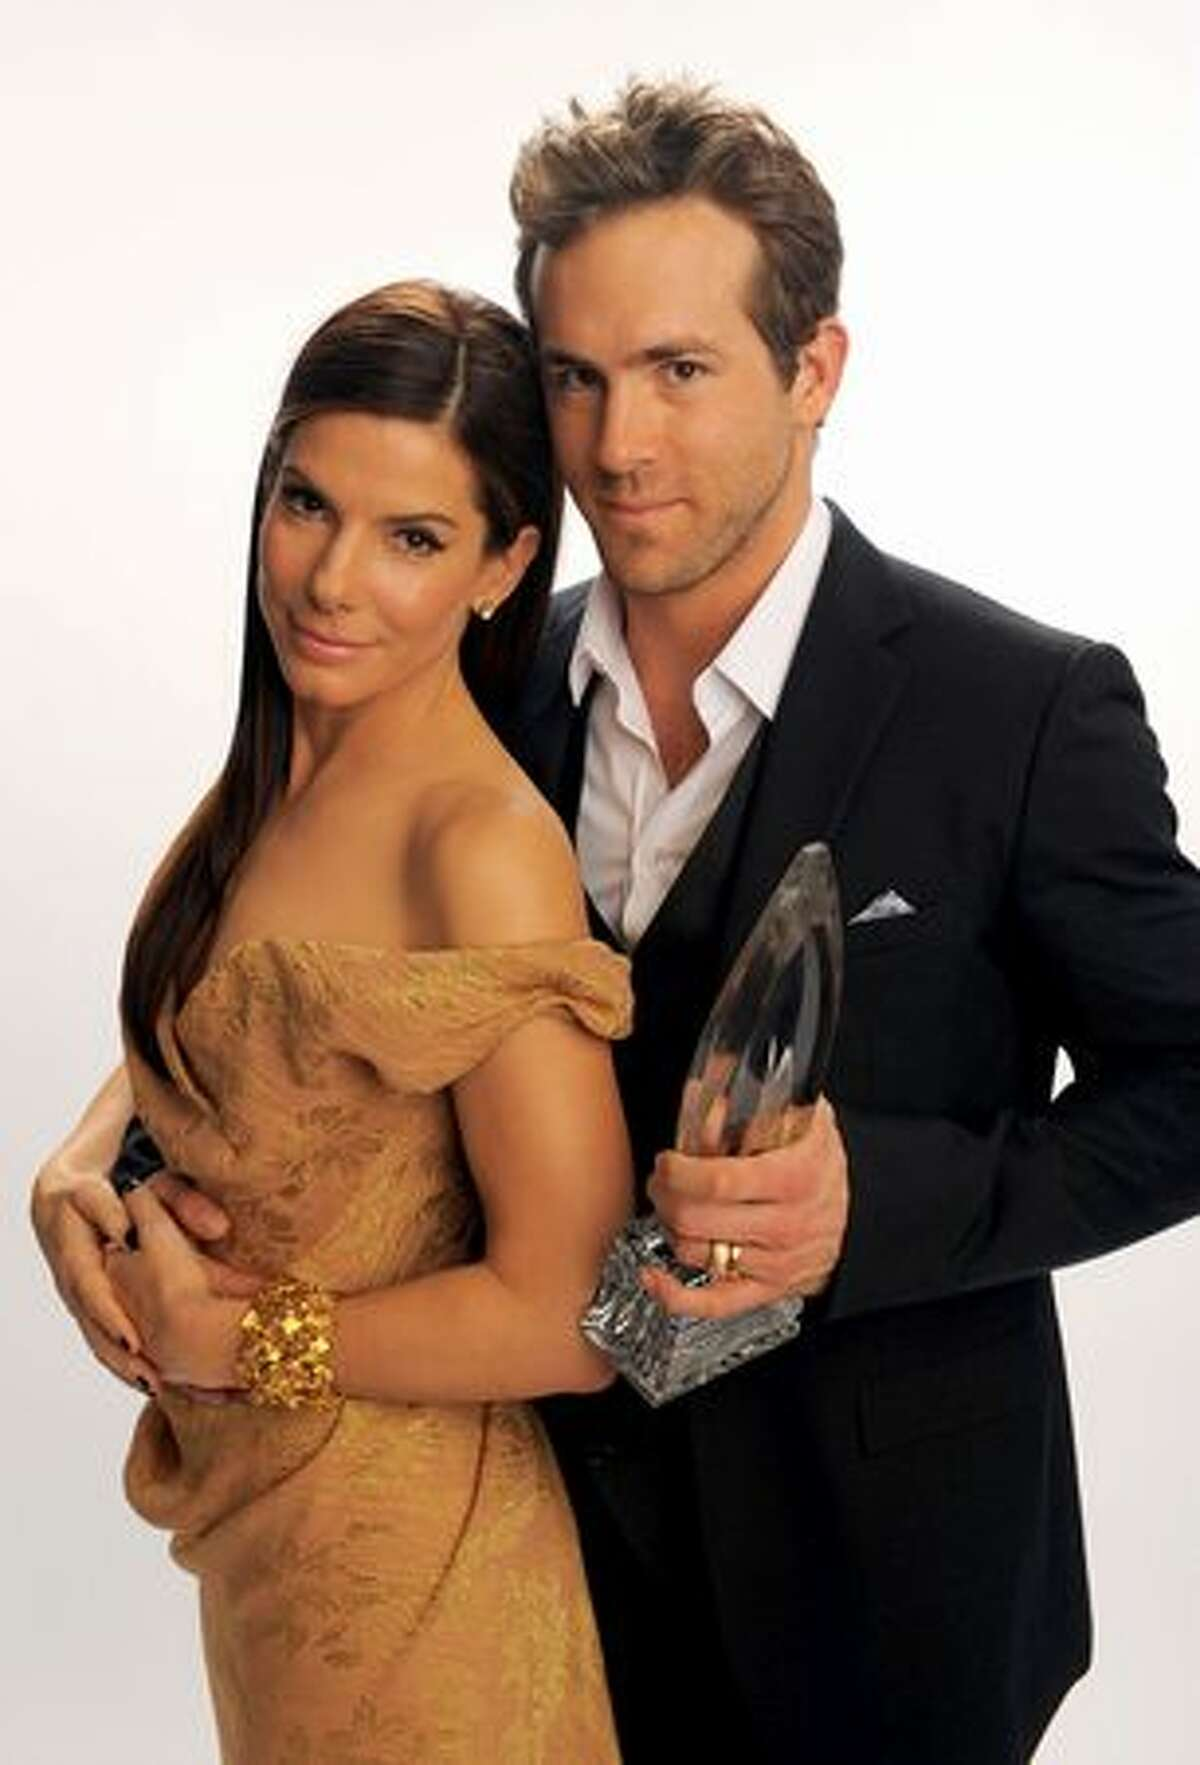 Actors Sandra Bullock and Ryan Reynolds pose for a portrait for Favorite Comedy Movie during the People's Choice Awards 2010 held at Nokia Theatre L.A. Live in Los Angeles on Wednesday, Jan. 6, 2010.